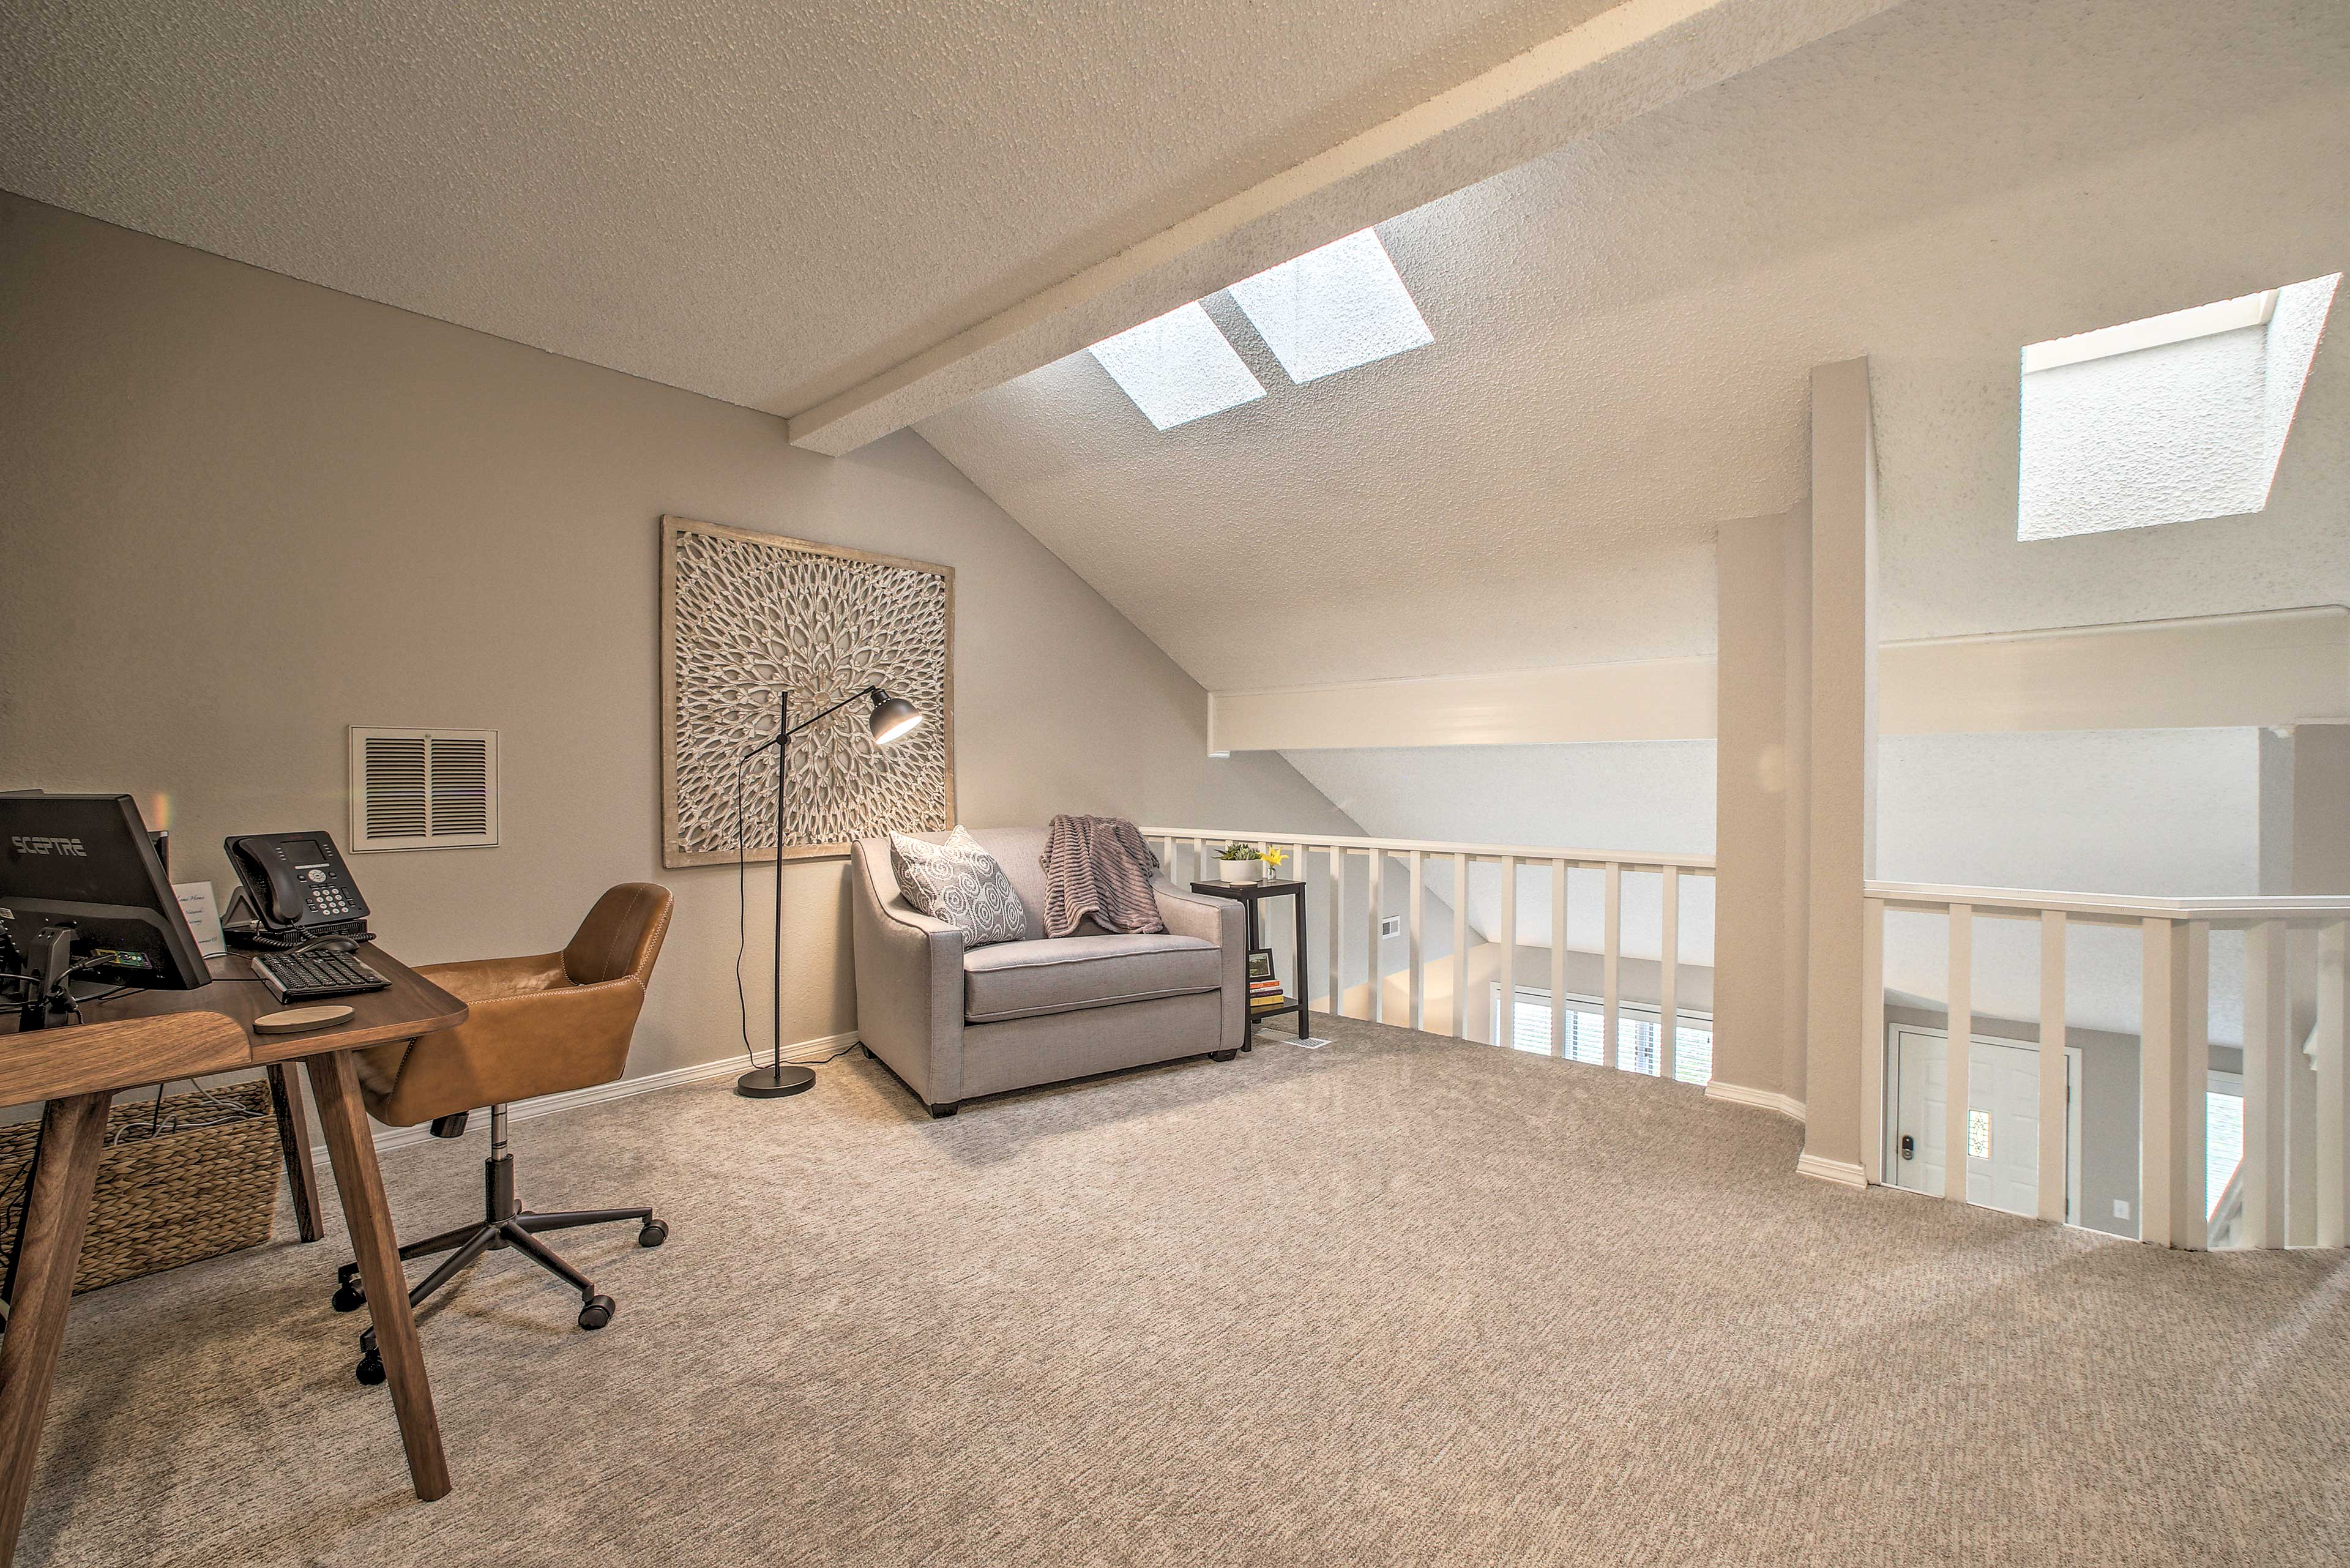 You'll find a cozy reading/working space upstairs in the loft.